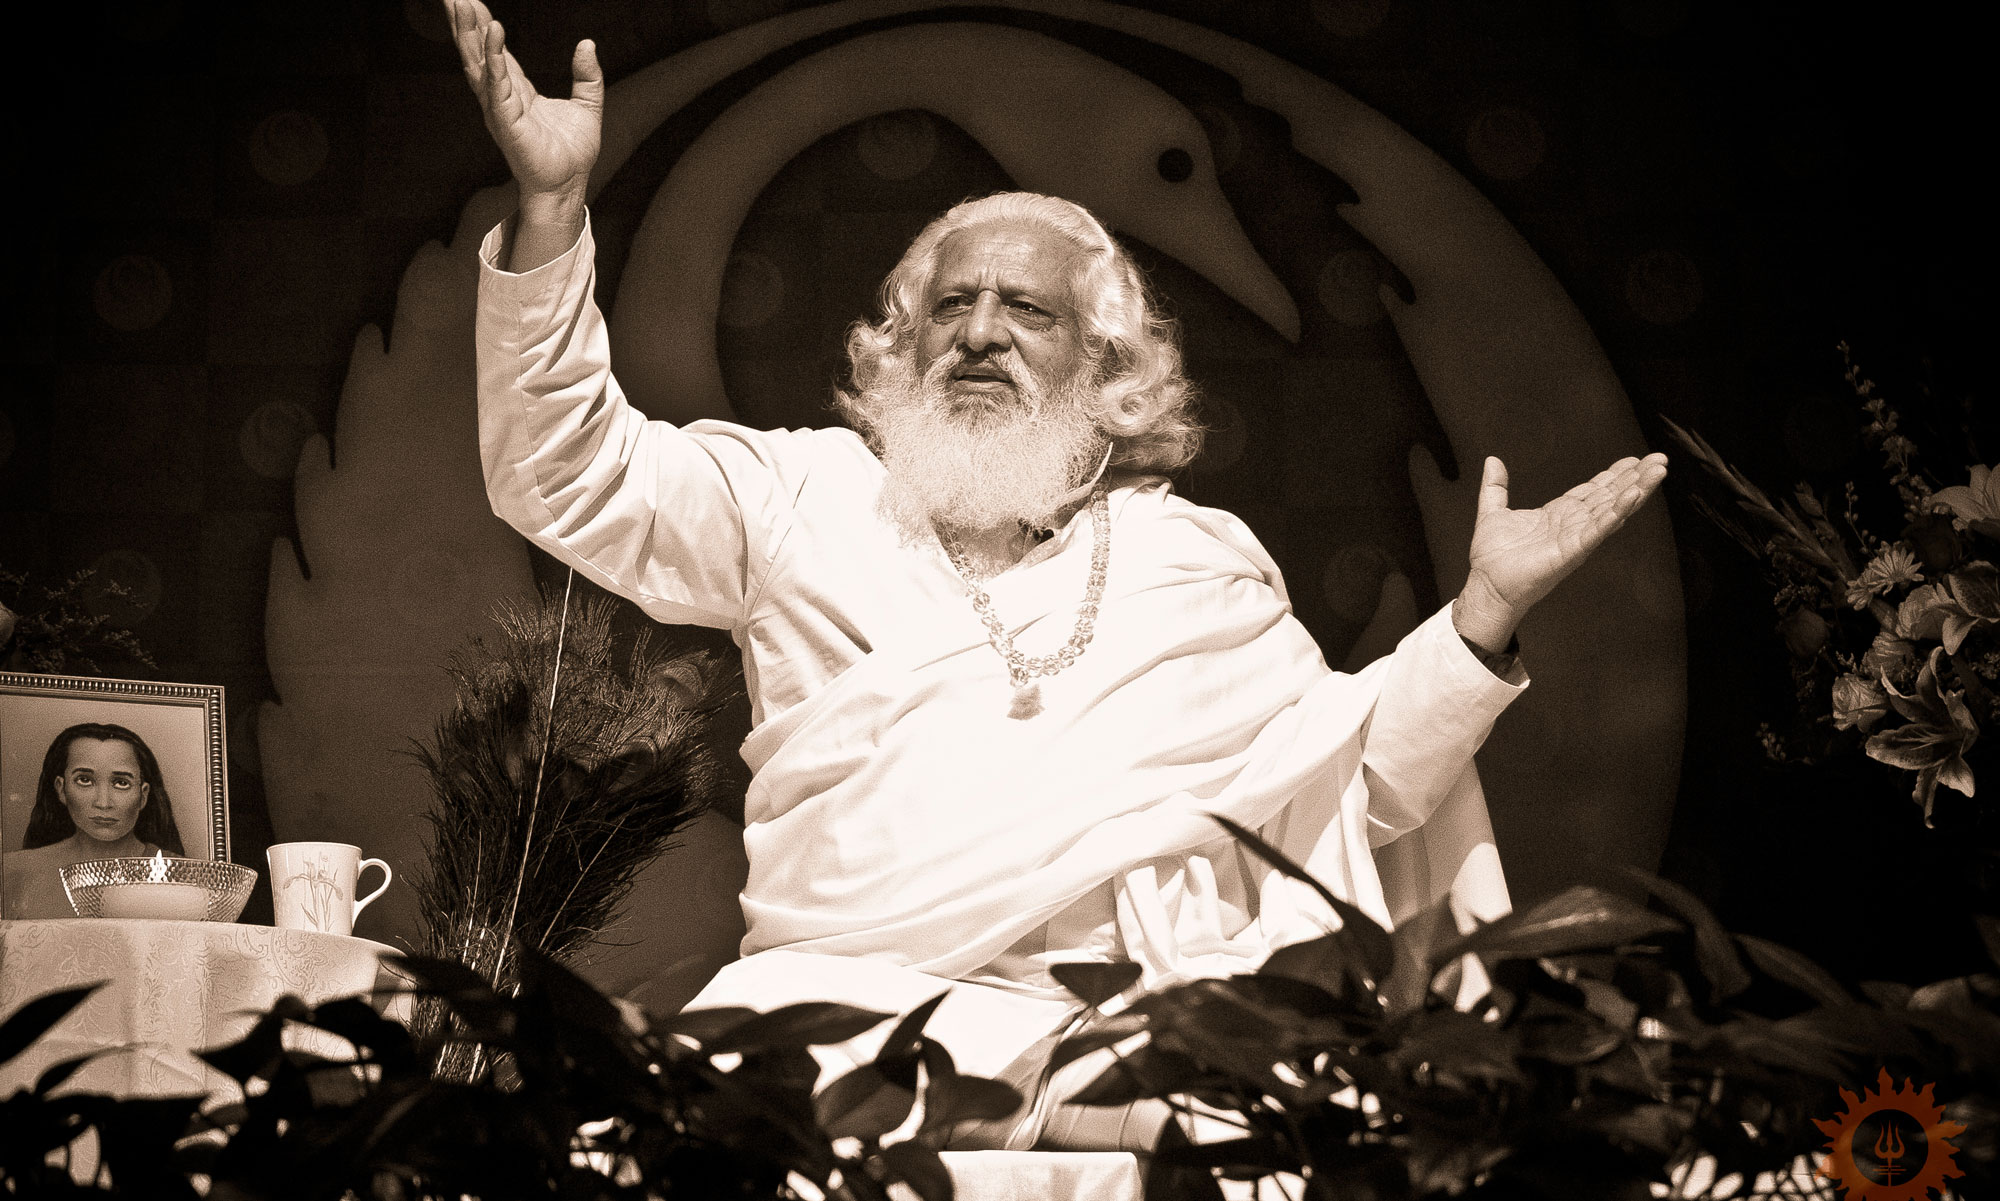 Photograph of Yogiraj.